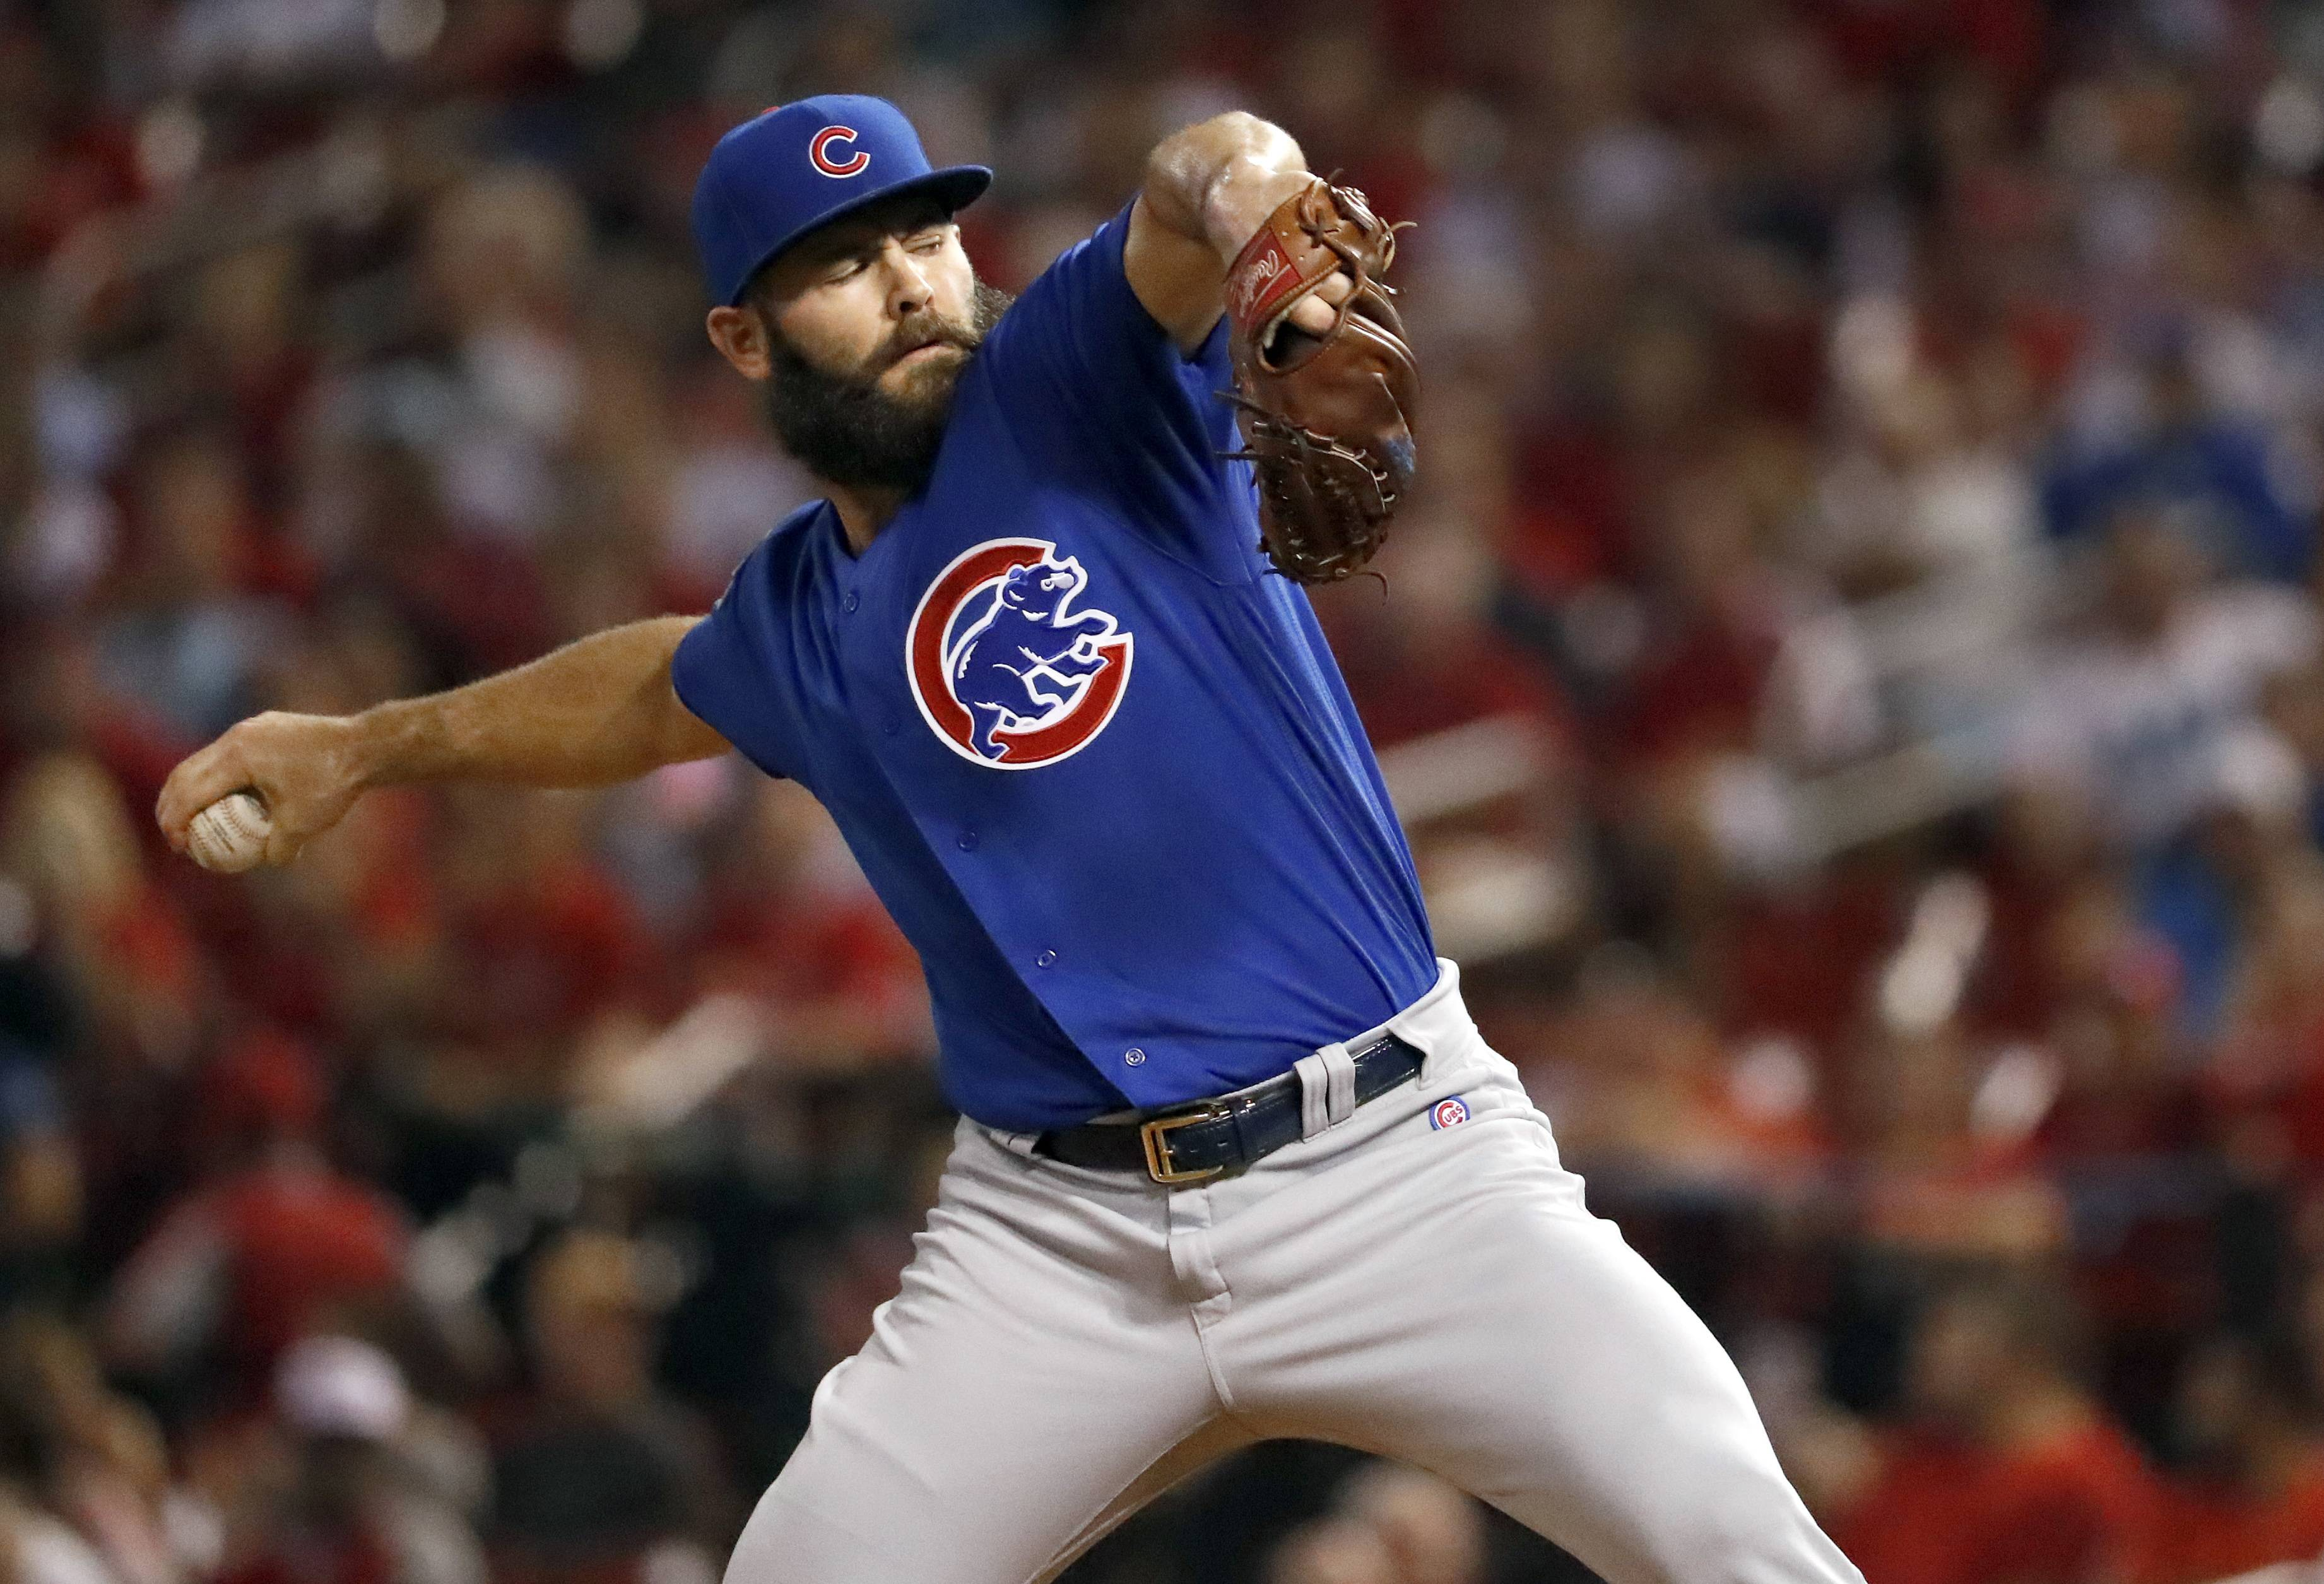 Workout plan altered for Chicago Cubs' Arrieta